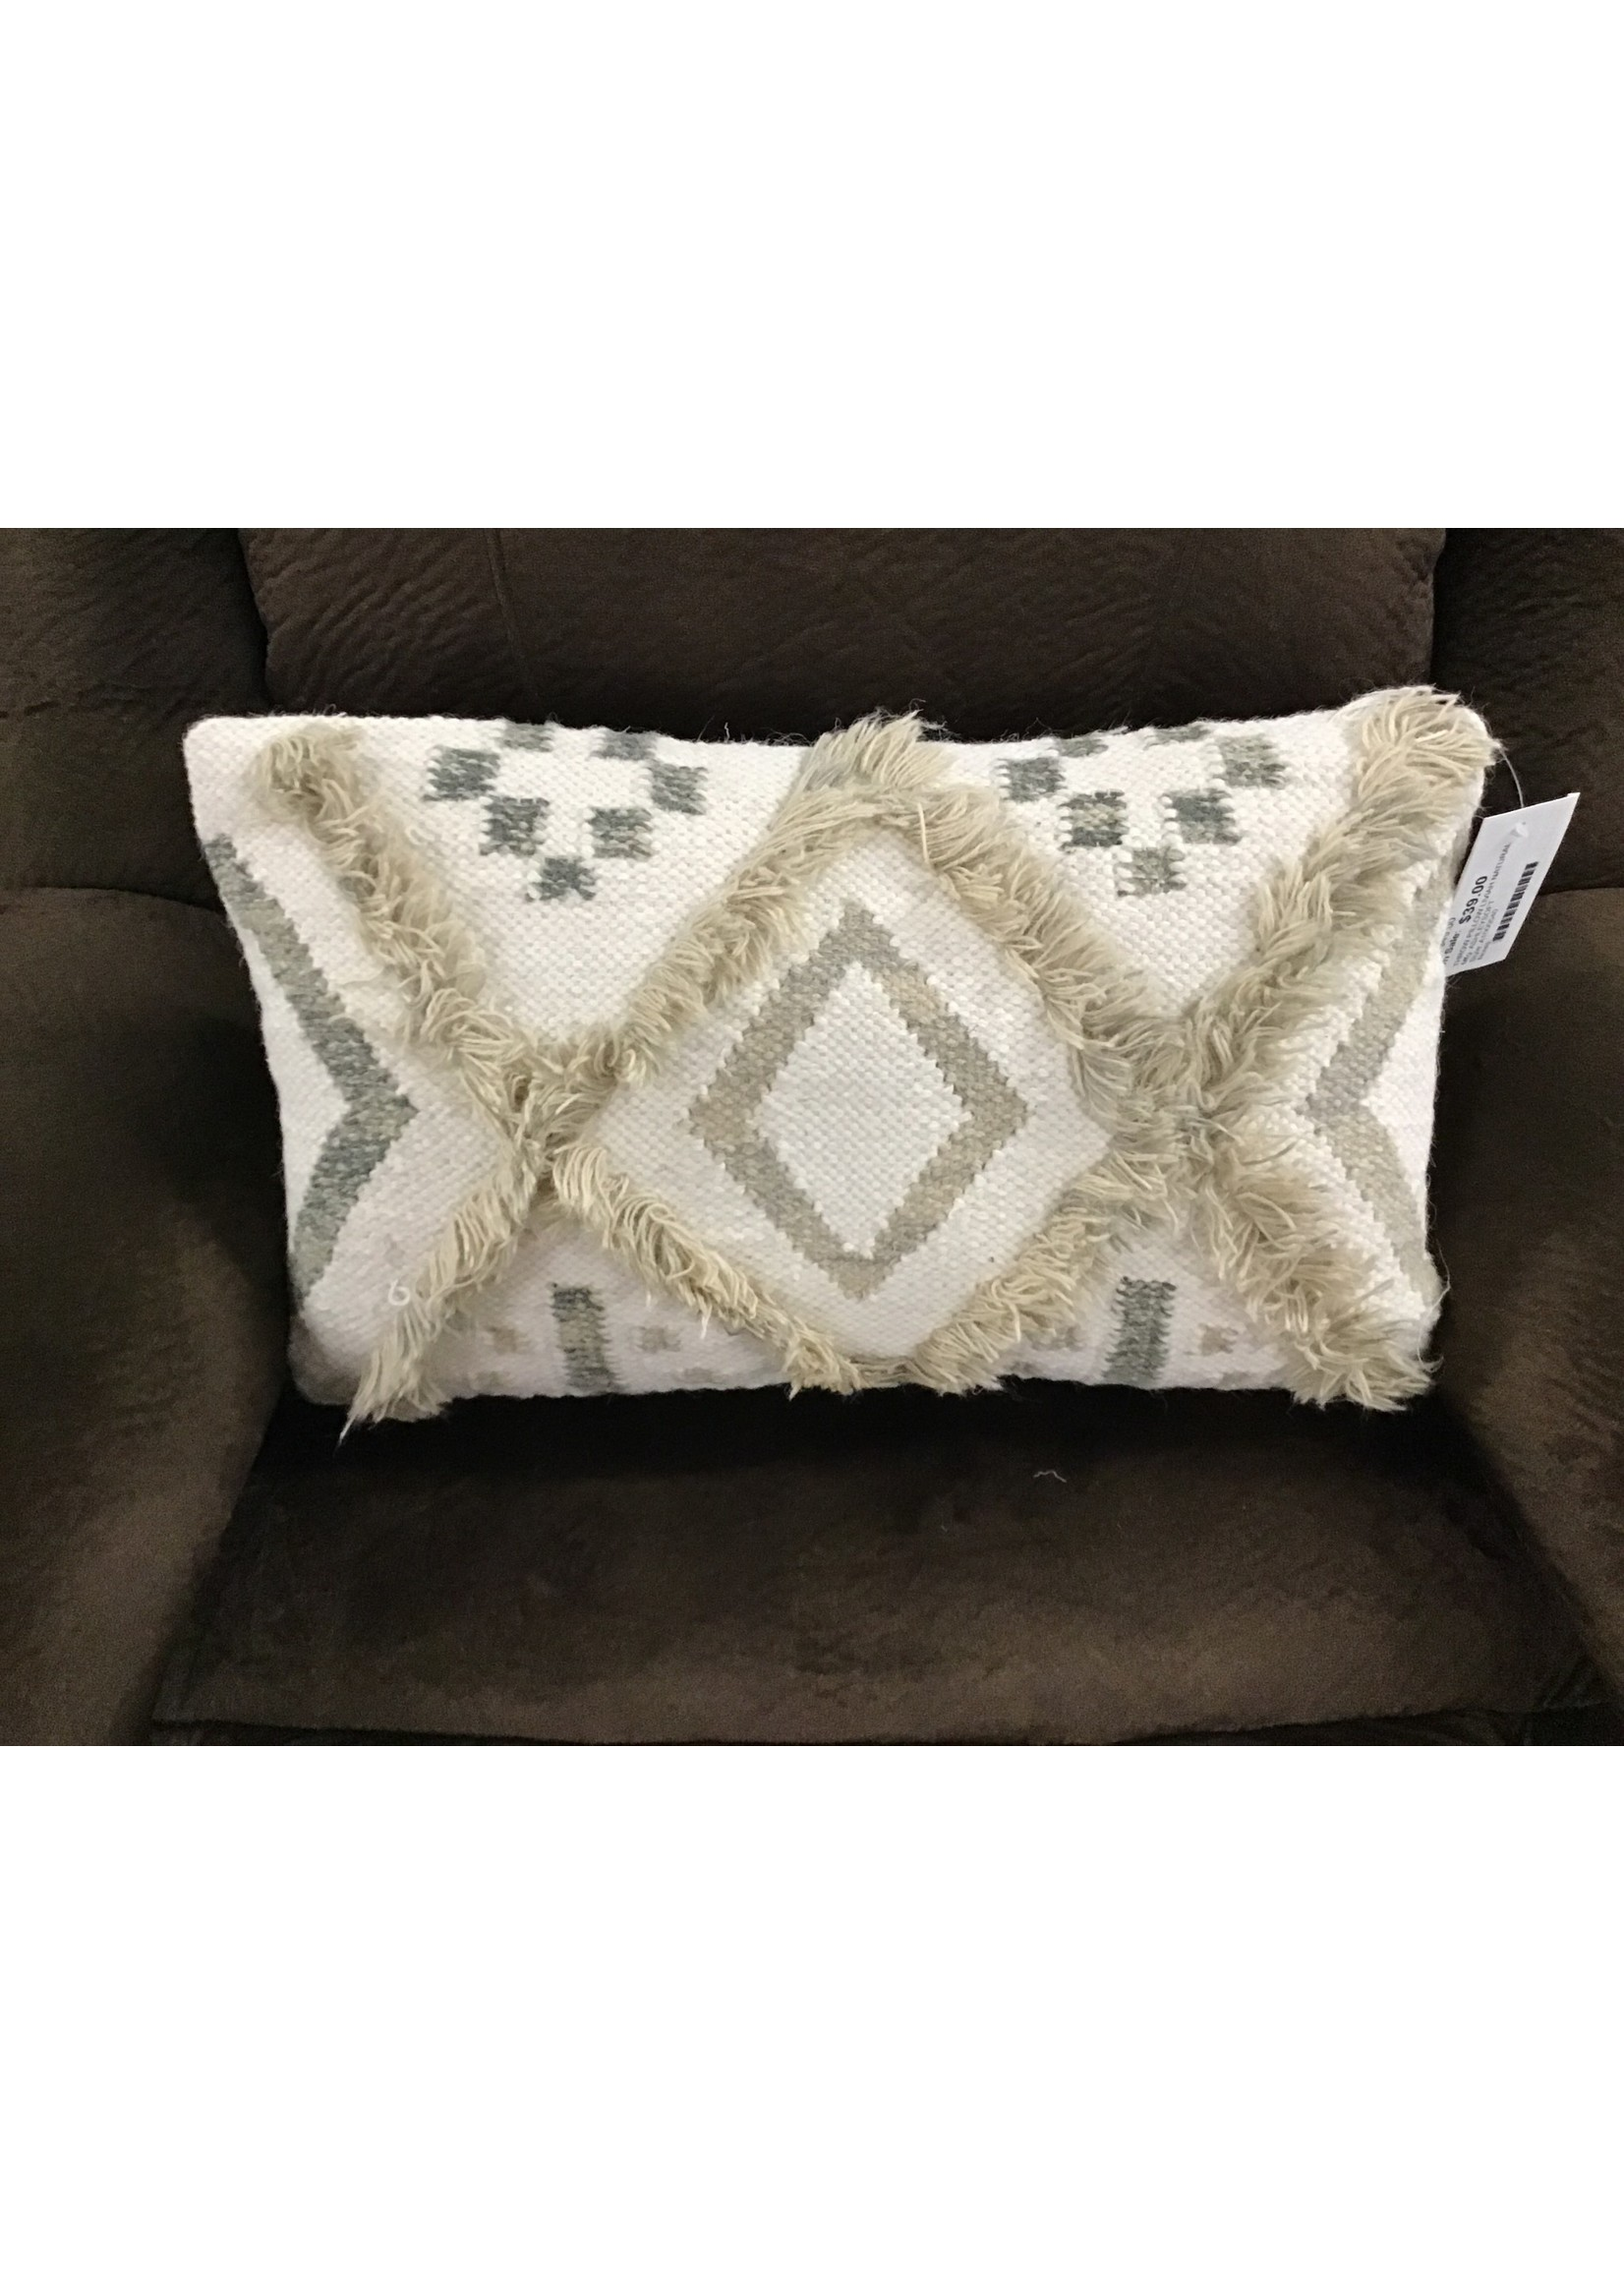 ASHLEY A1000540 THROW PILLOW LIVIAH NATURAL